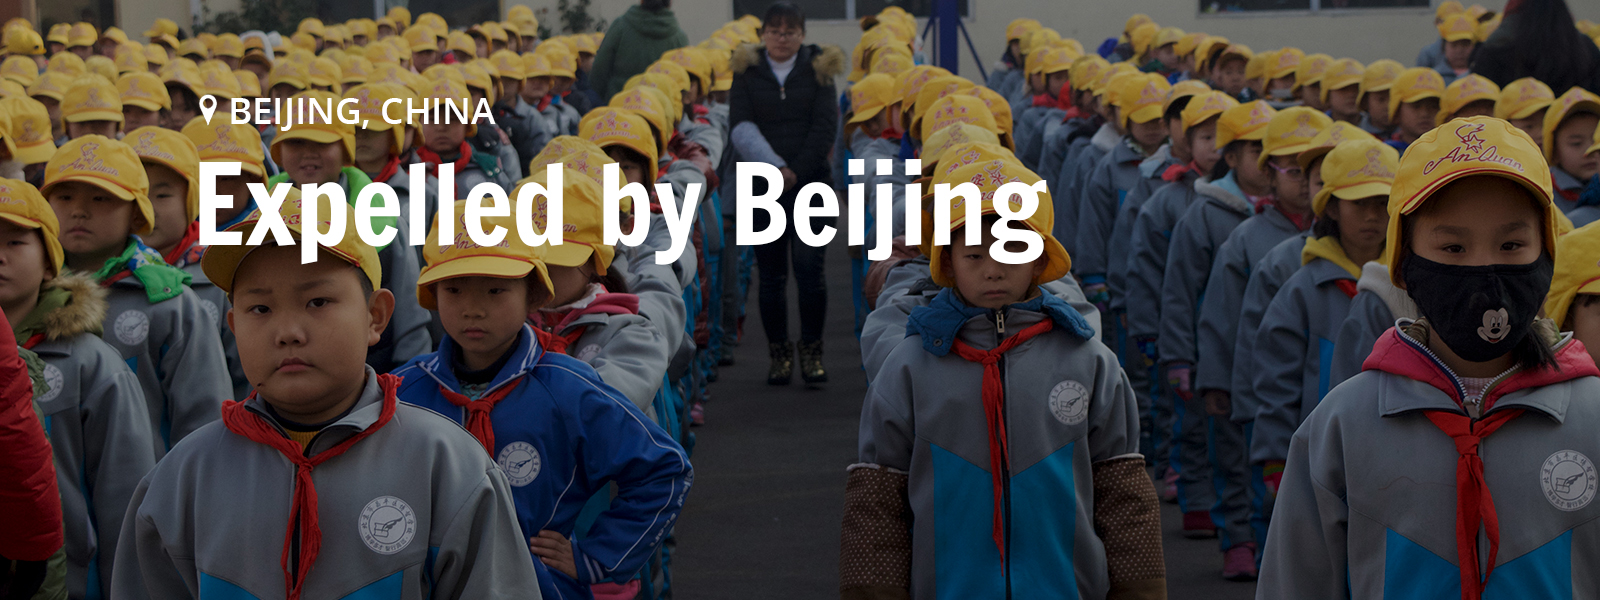 expelled by beijing